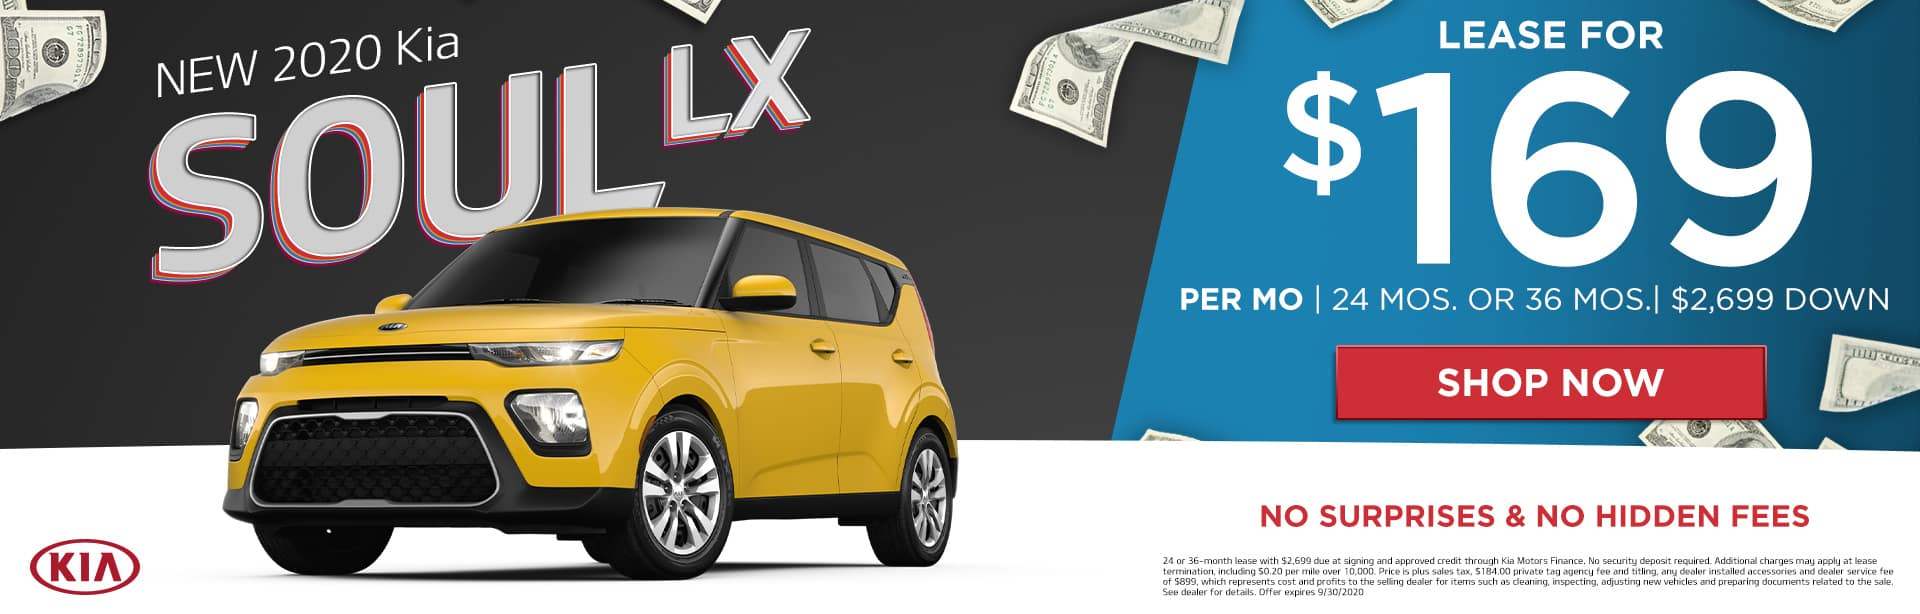 New 2020 Kia Soul LX | Lease For $169 Per Month | 24 Months or 36 Months | $2,699 Down | No Surprises & No Hidden Fees